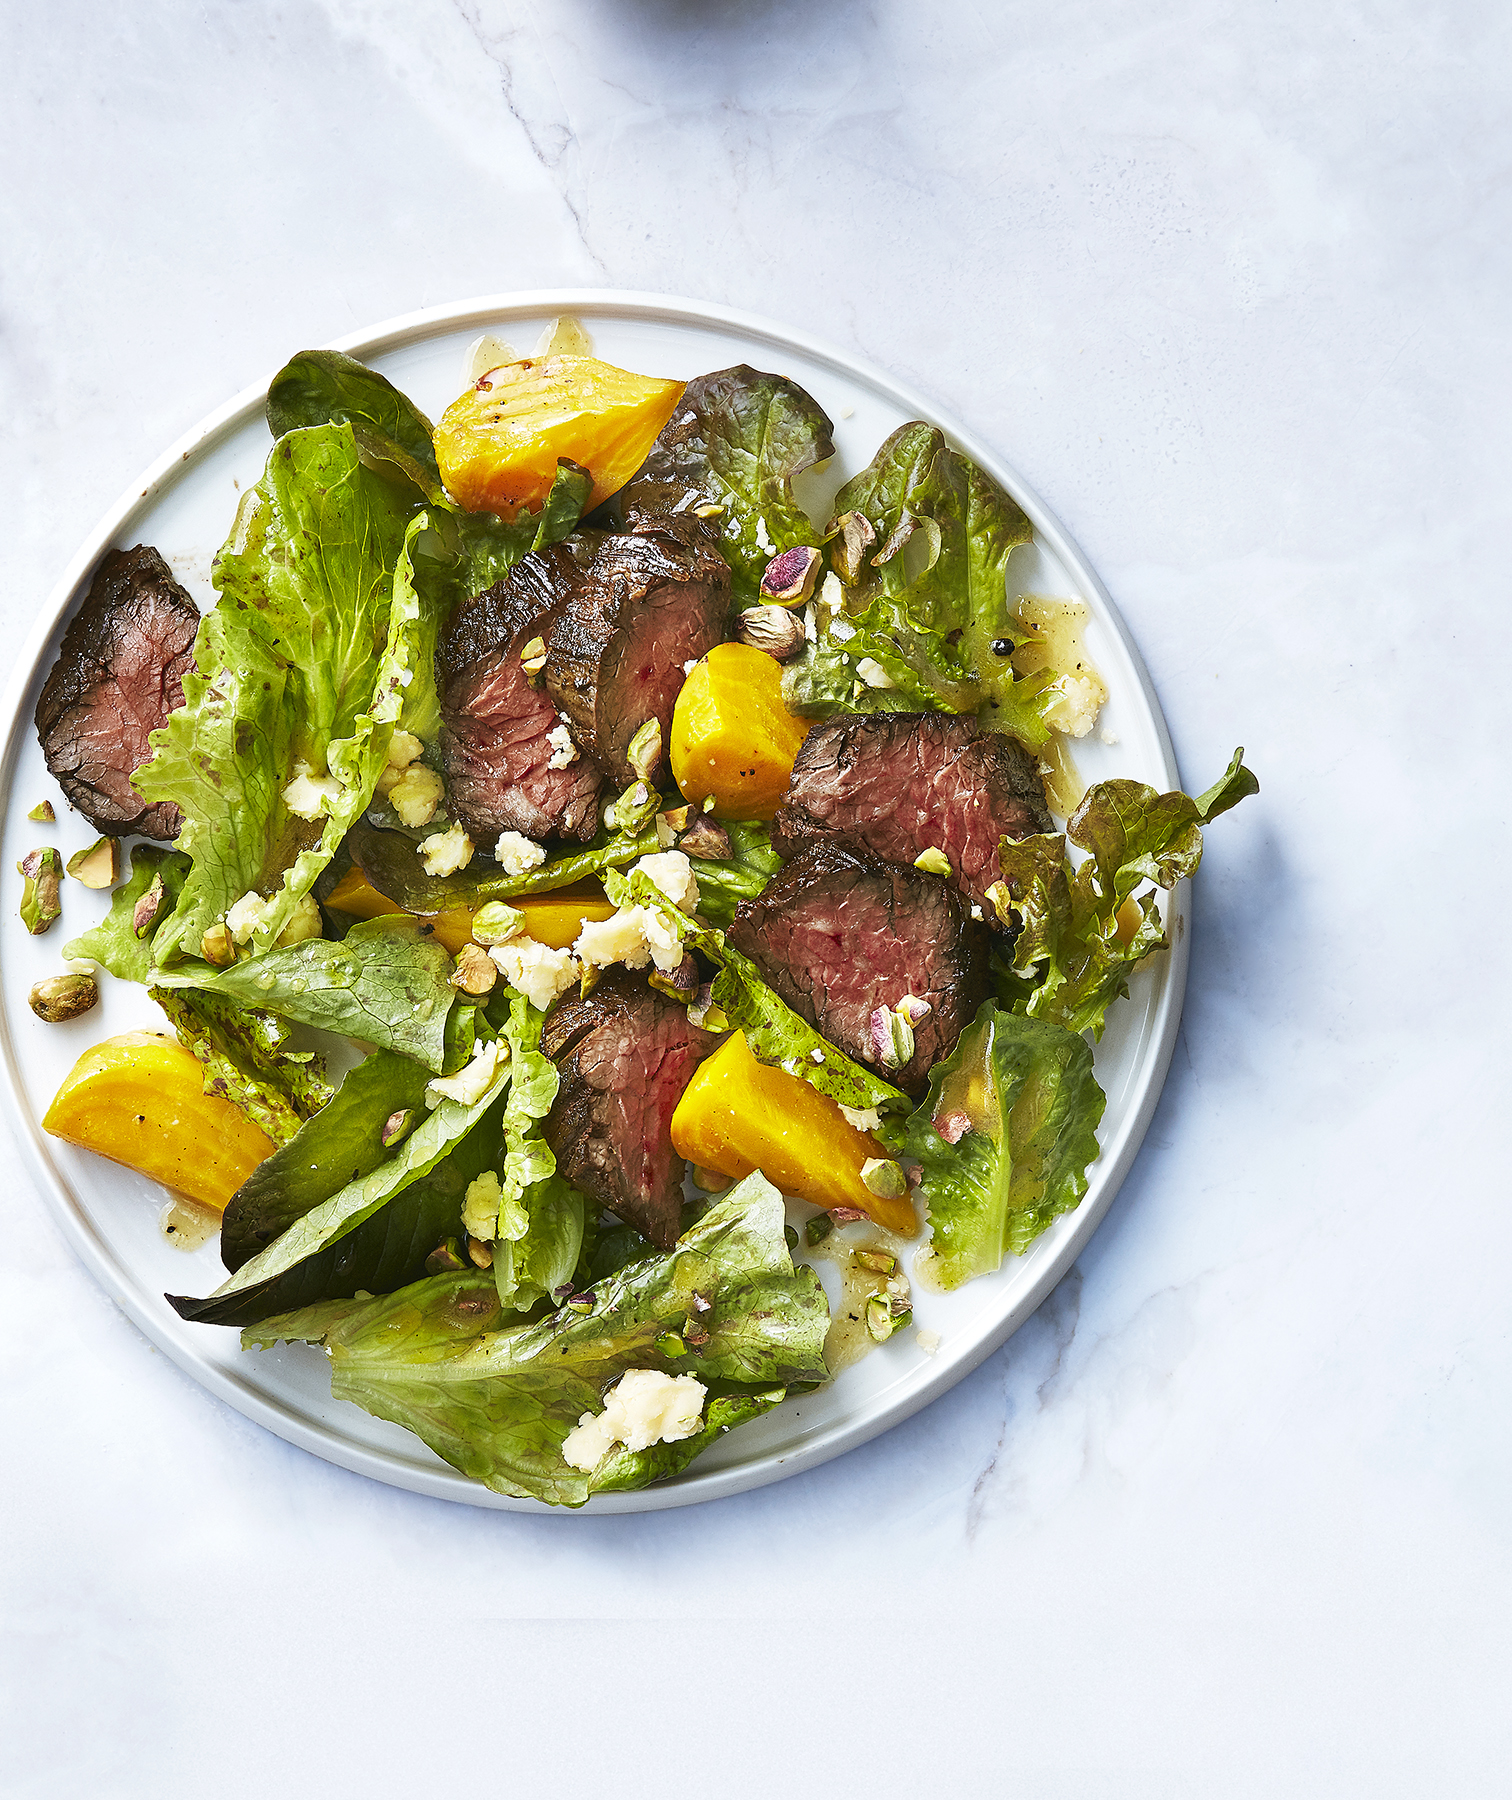 Steak and Beet Salad with Cheddar and Pistachios